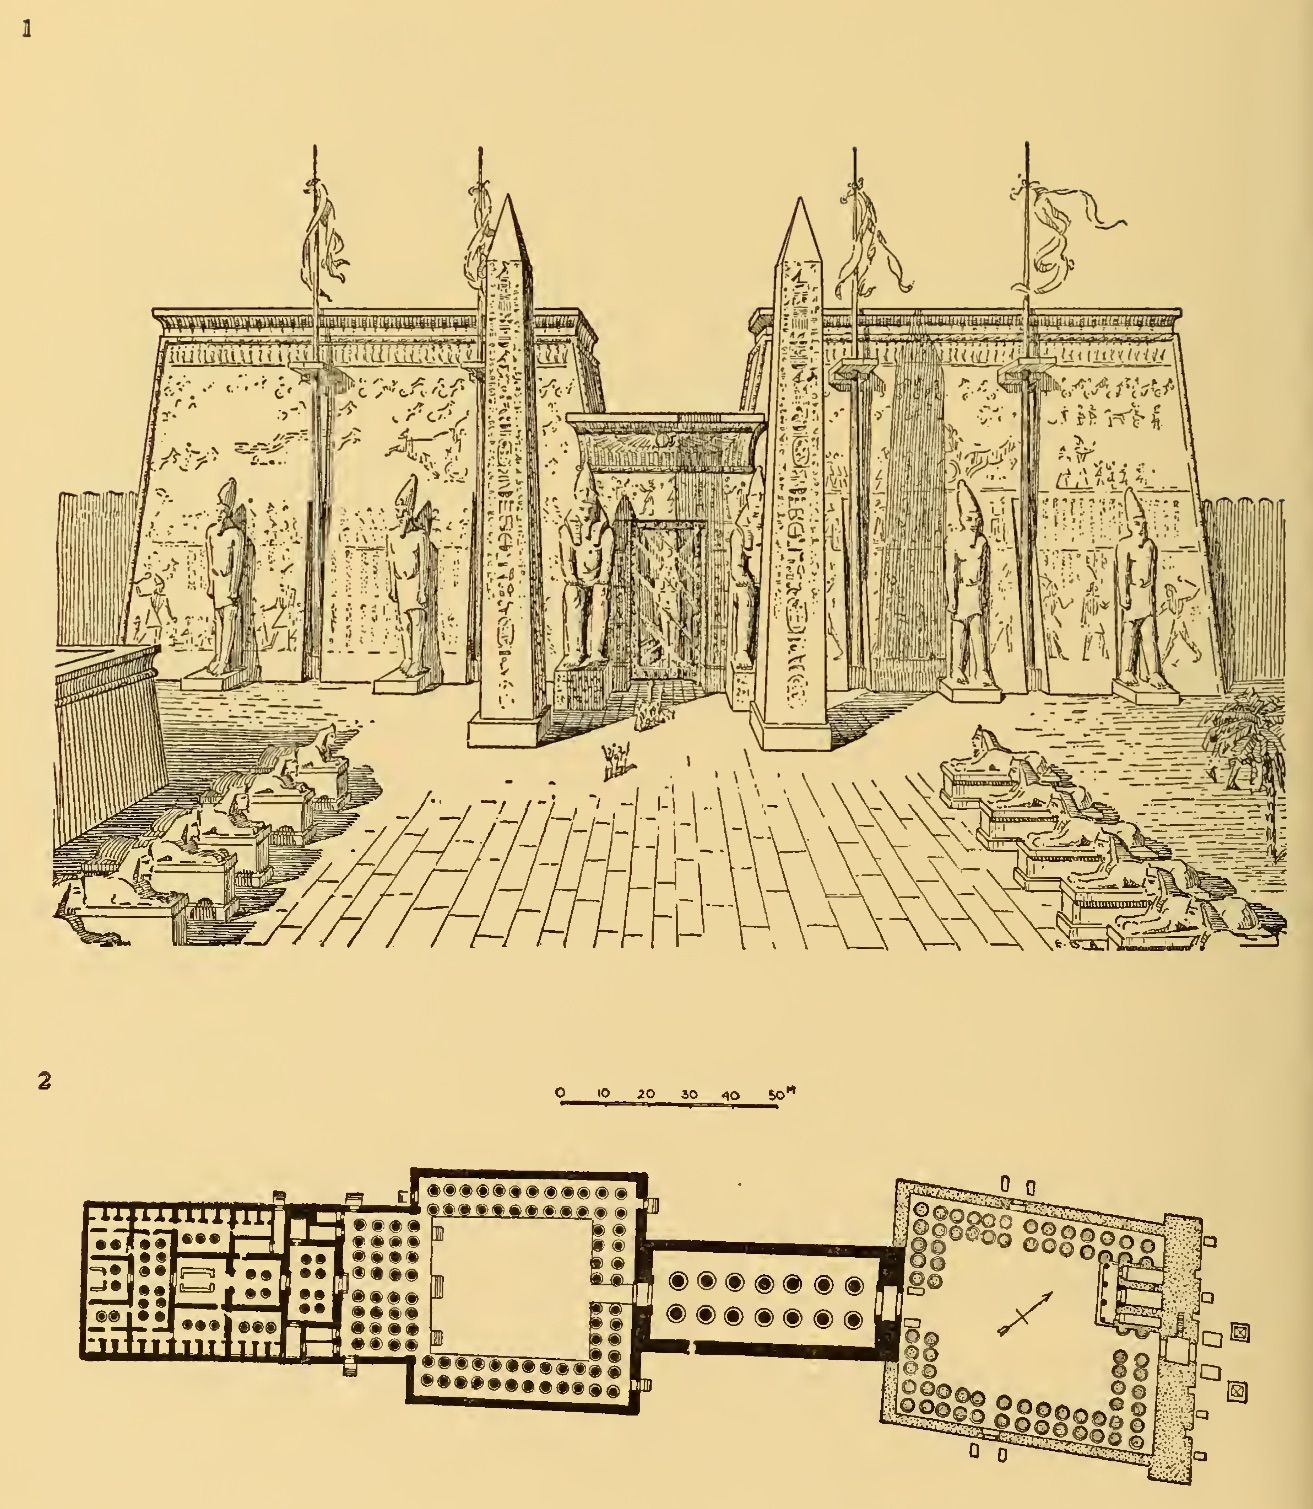 Temple of Amon-Re at Luxor (1)